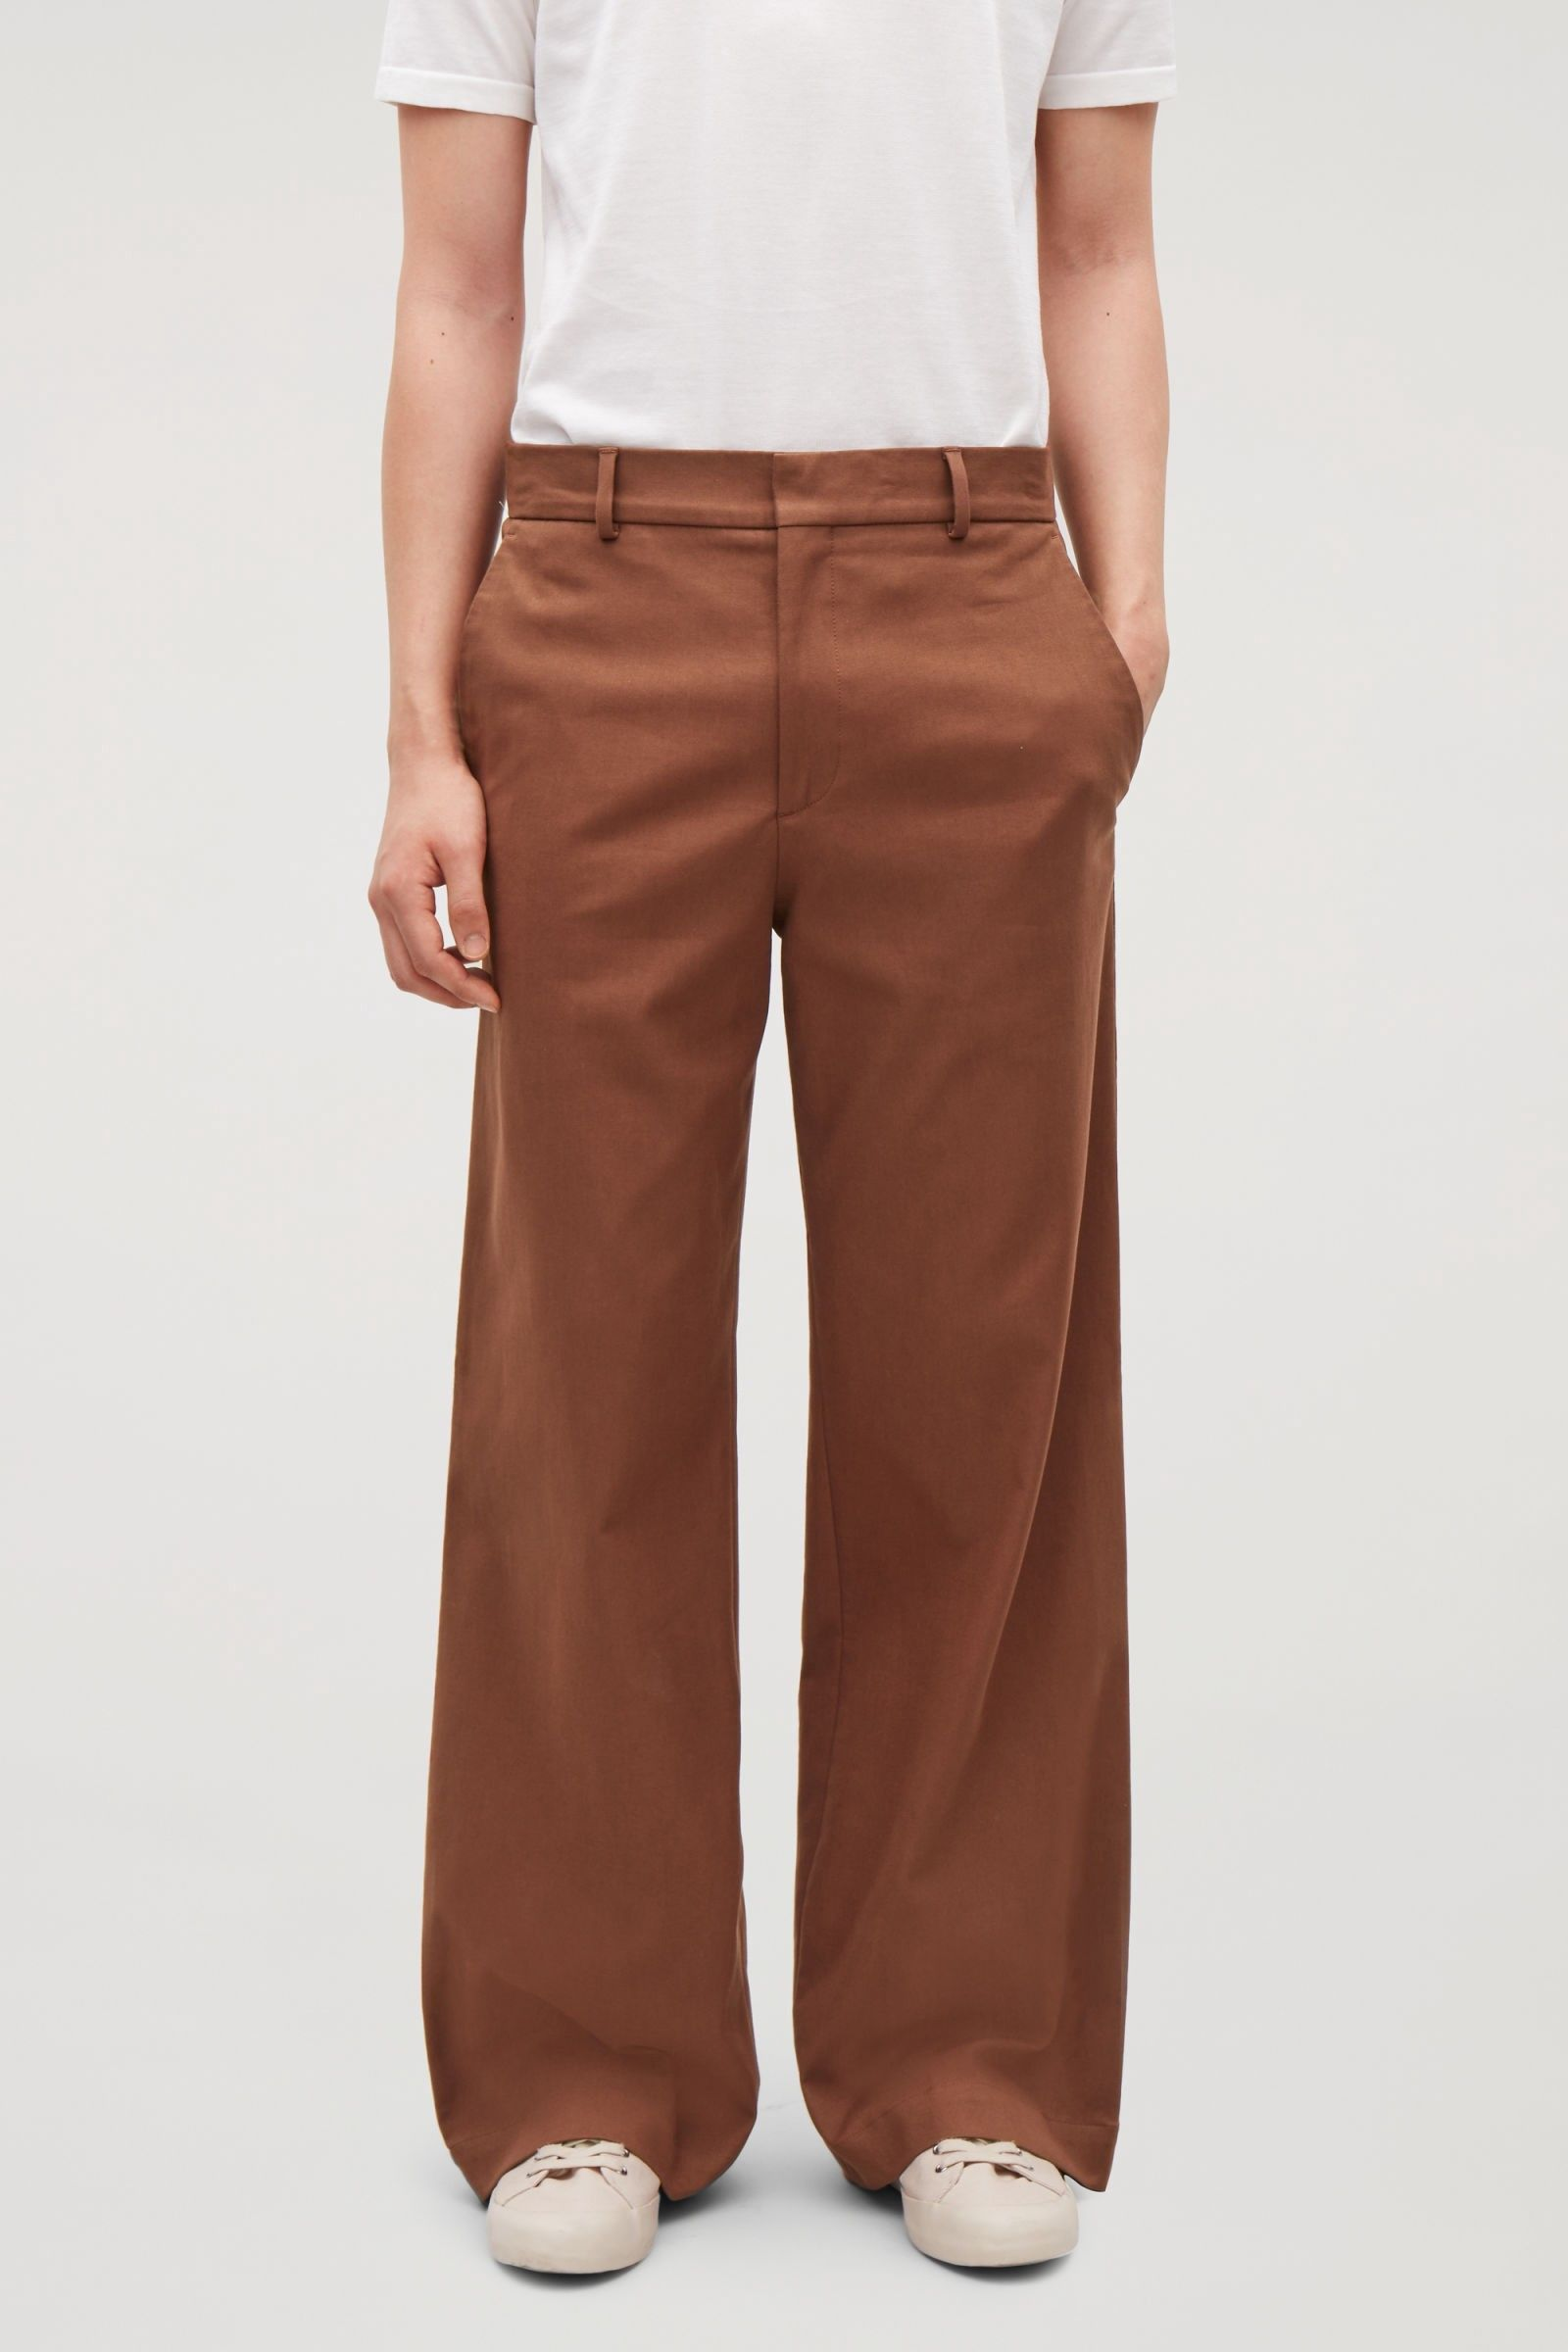 00ec7d91955d Cos Cotton Wide-Leg Trousers - Brown 32R | Products | Trousers, Wide ...